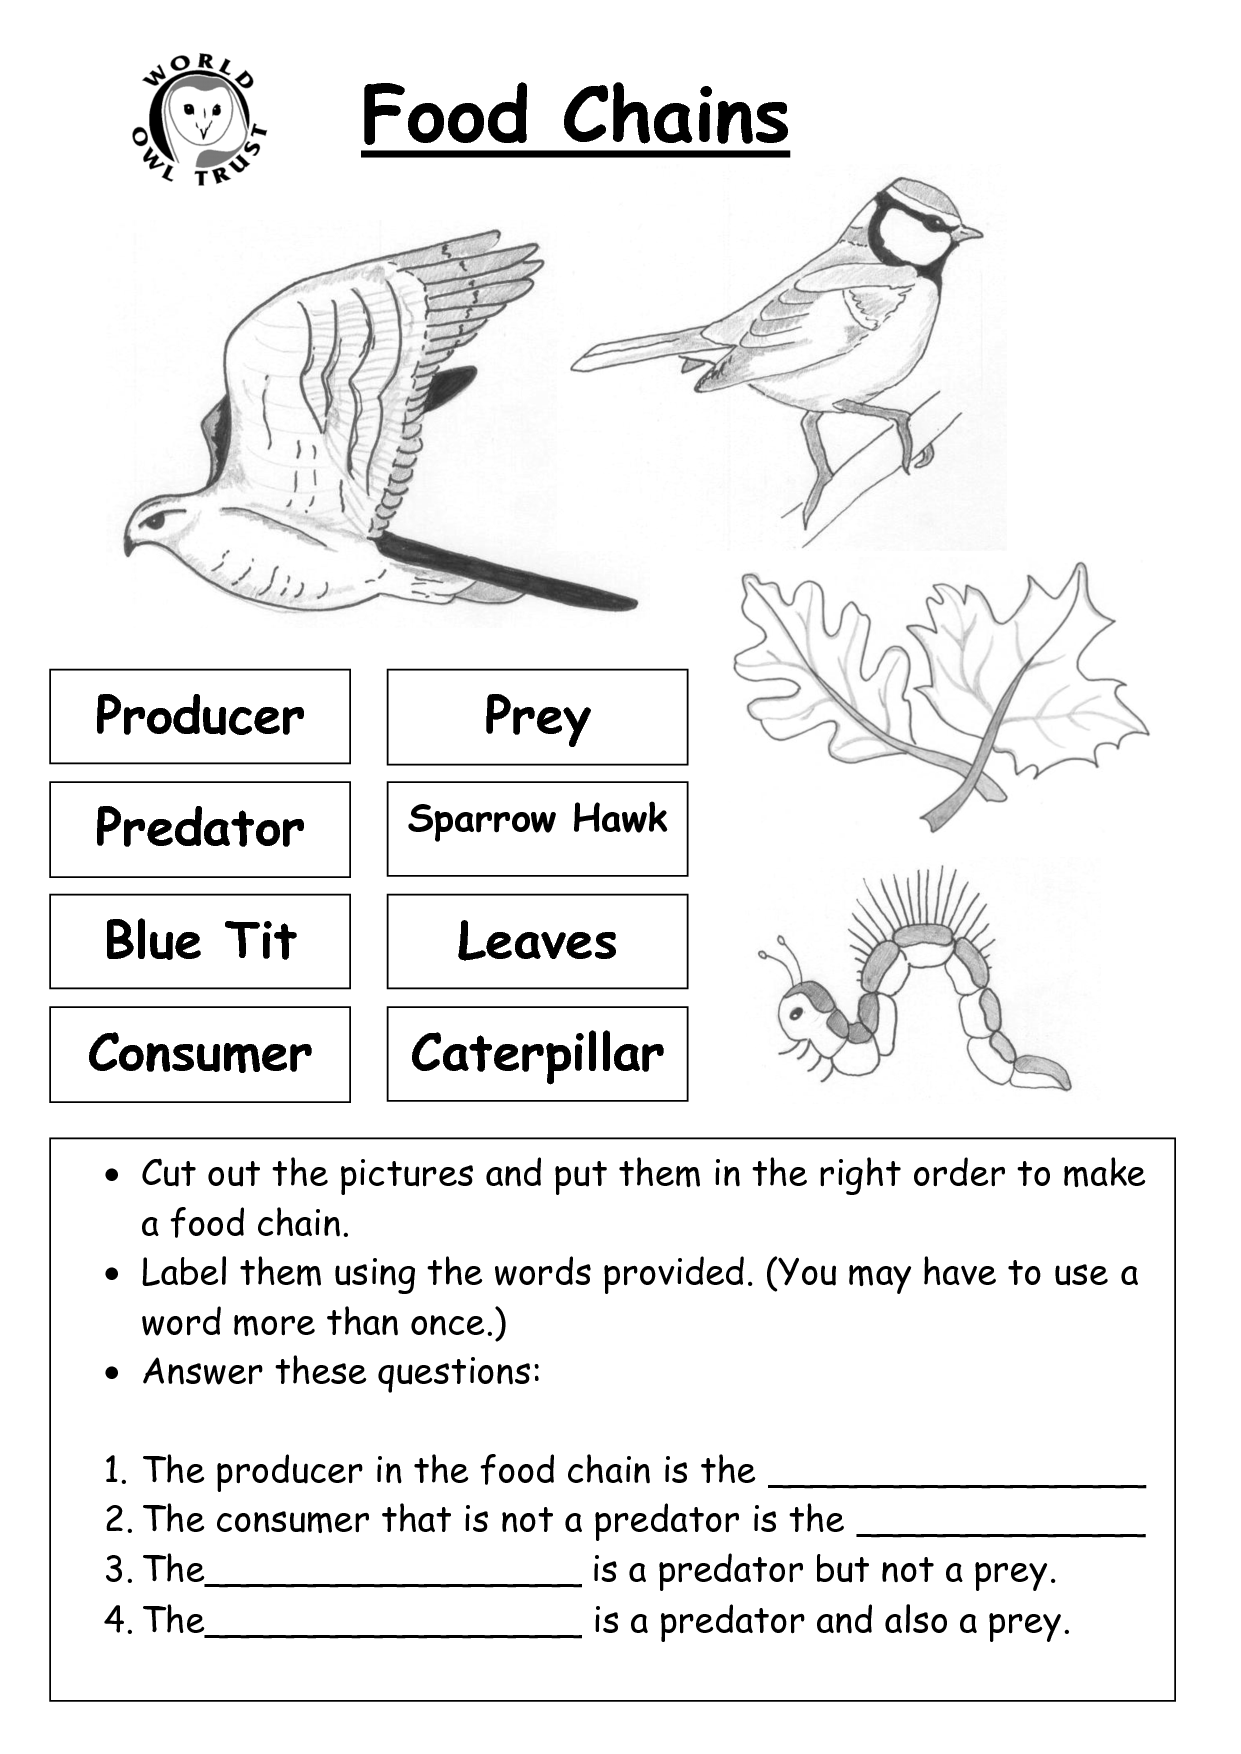 Food Chain Quiz Answer Key 8th Edition Coin Values